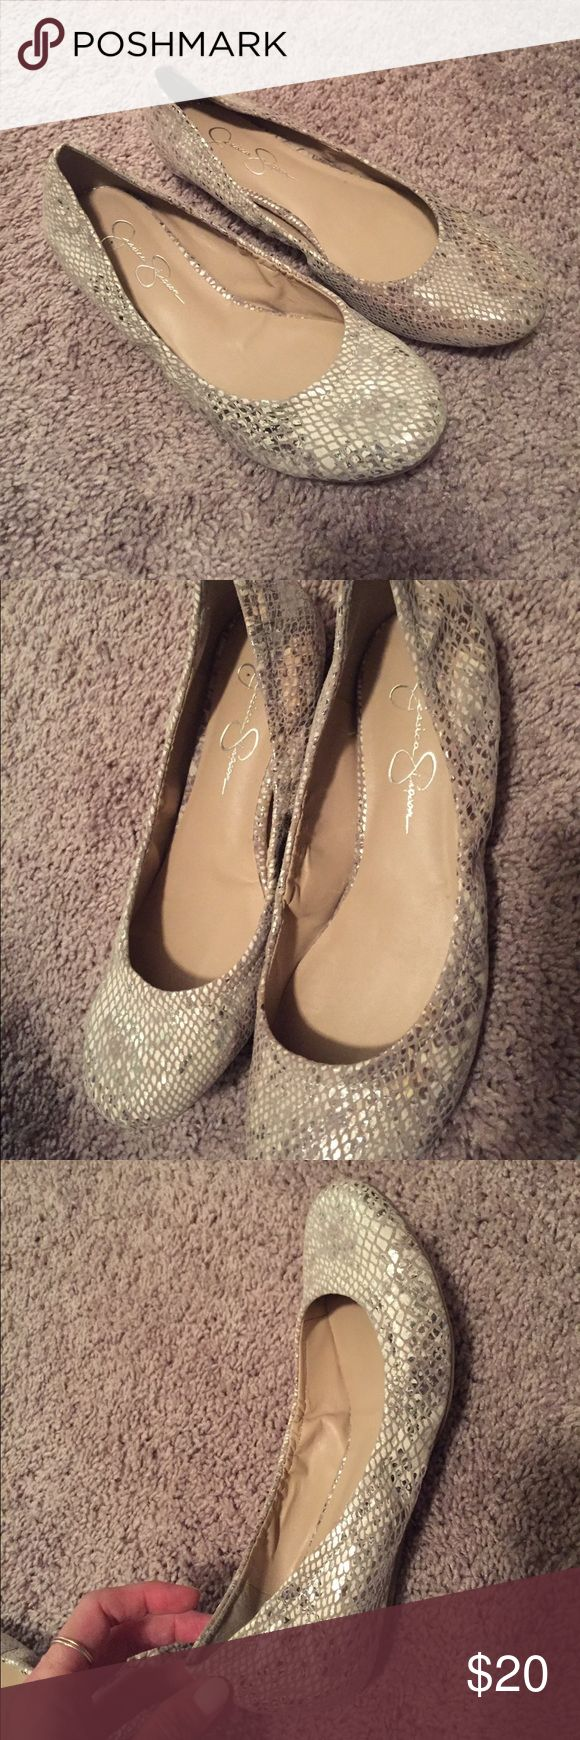 Jessica Simpson ballet flats size 8 Genuine leather ballet flats by Jessica Simpson. Jessica Simpson Shoes Flats & Loafers